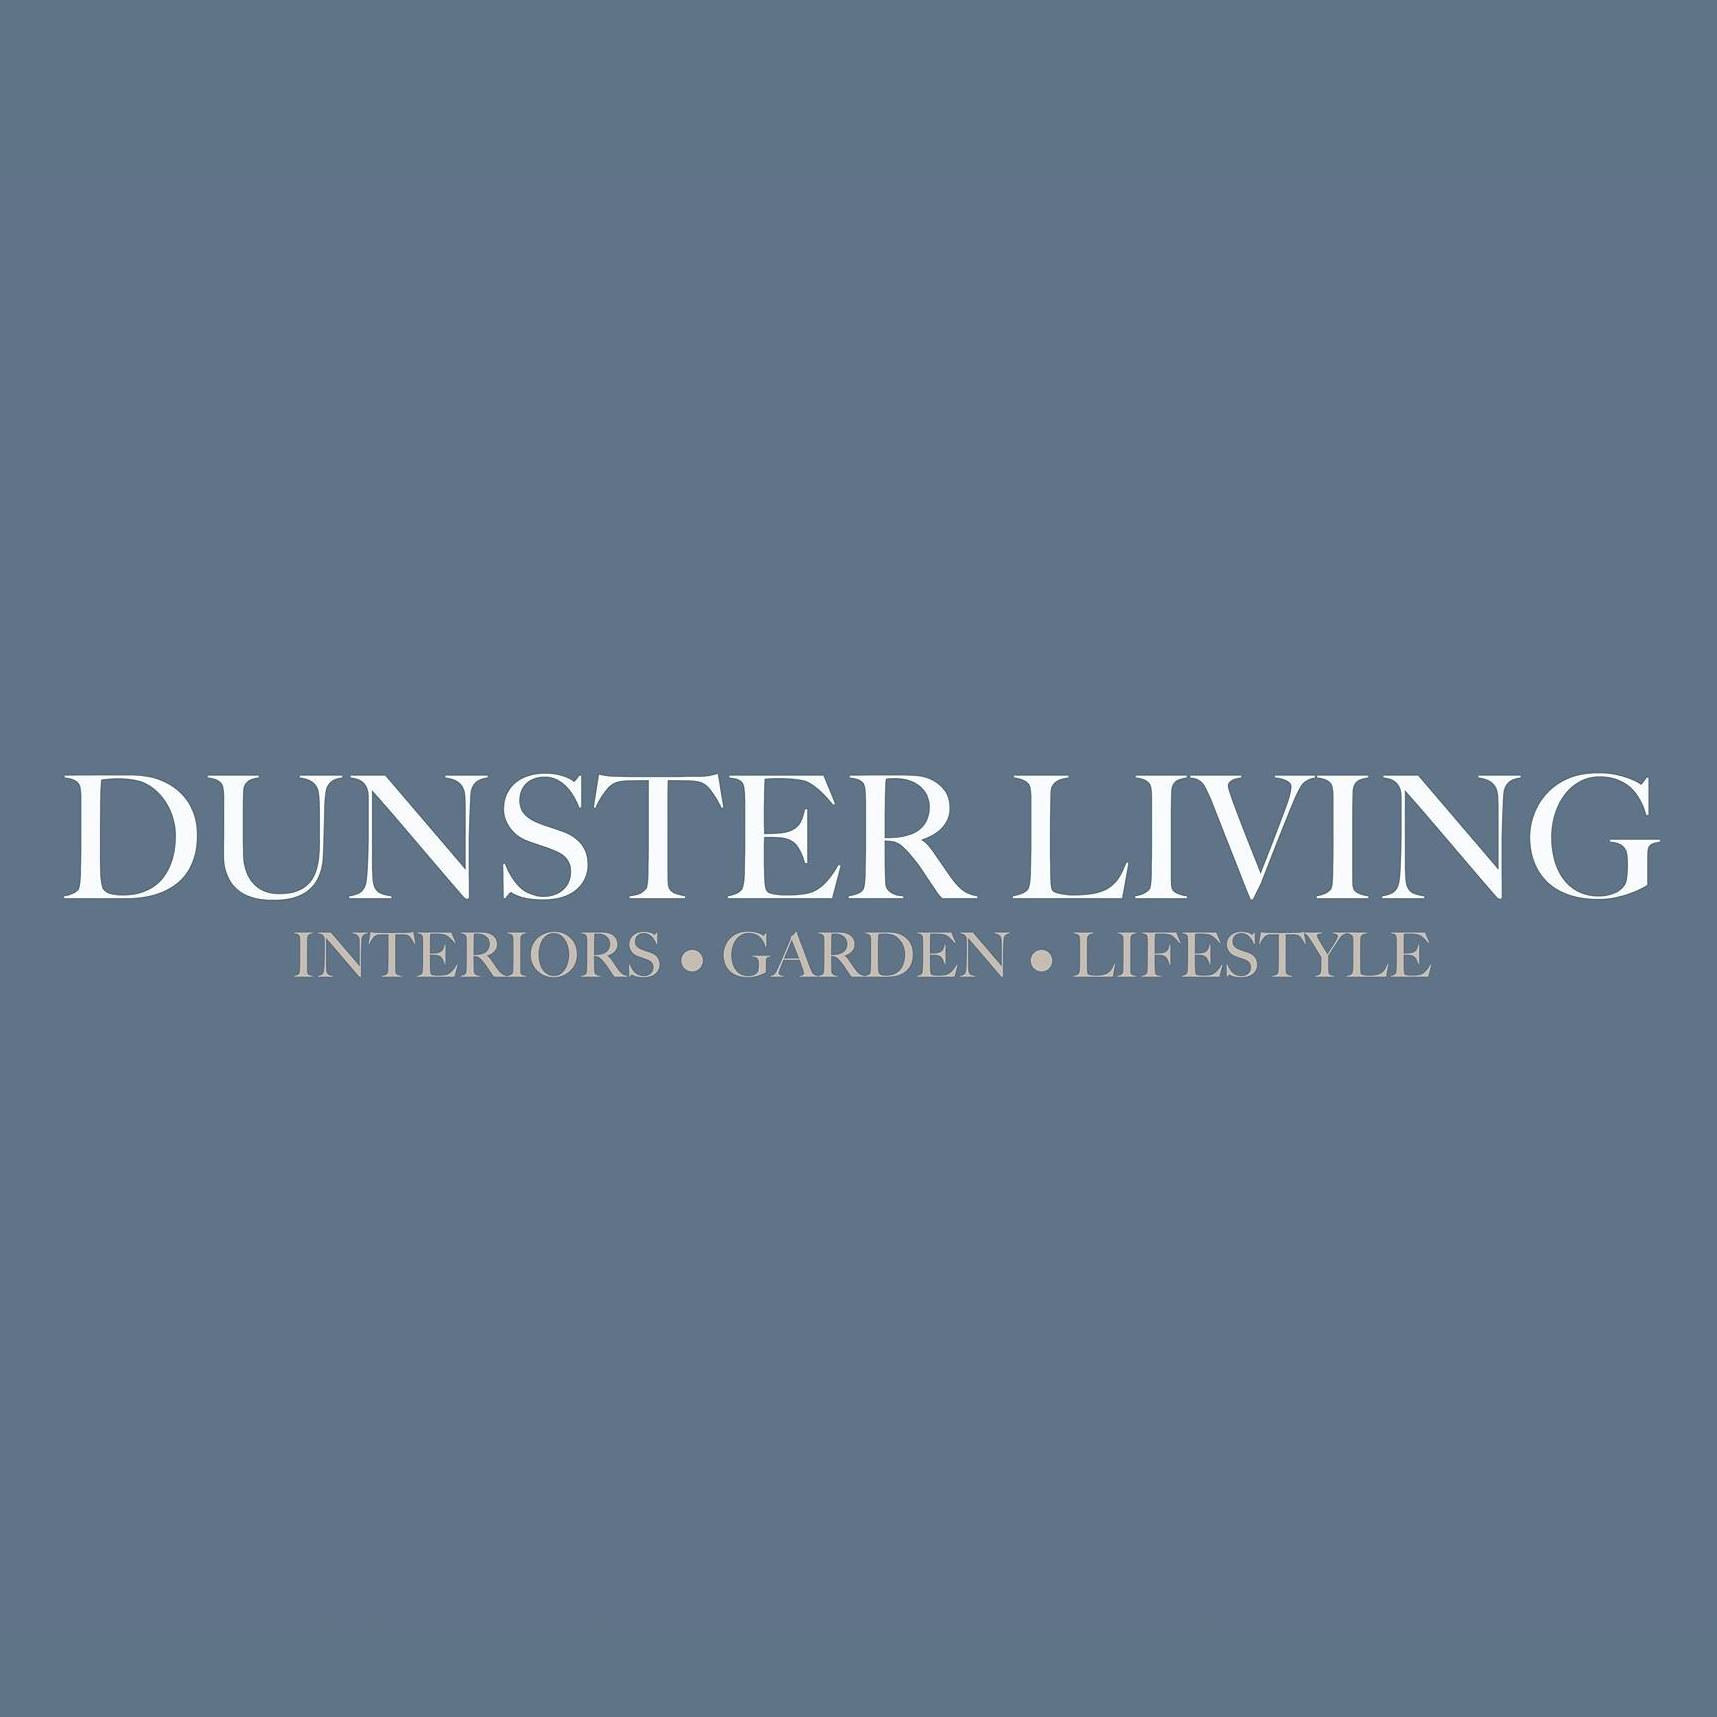 Dunster Living, Dunster, Somerset